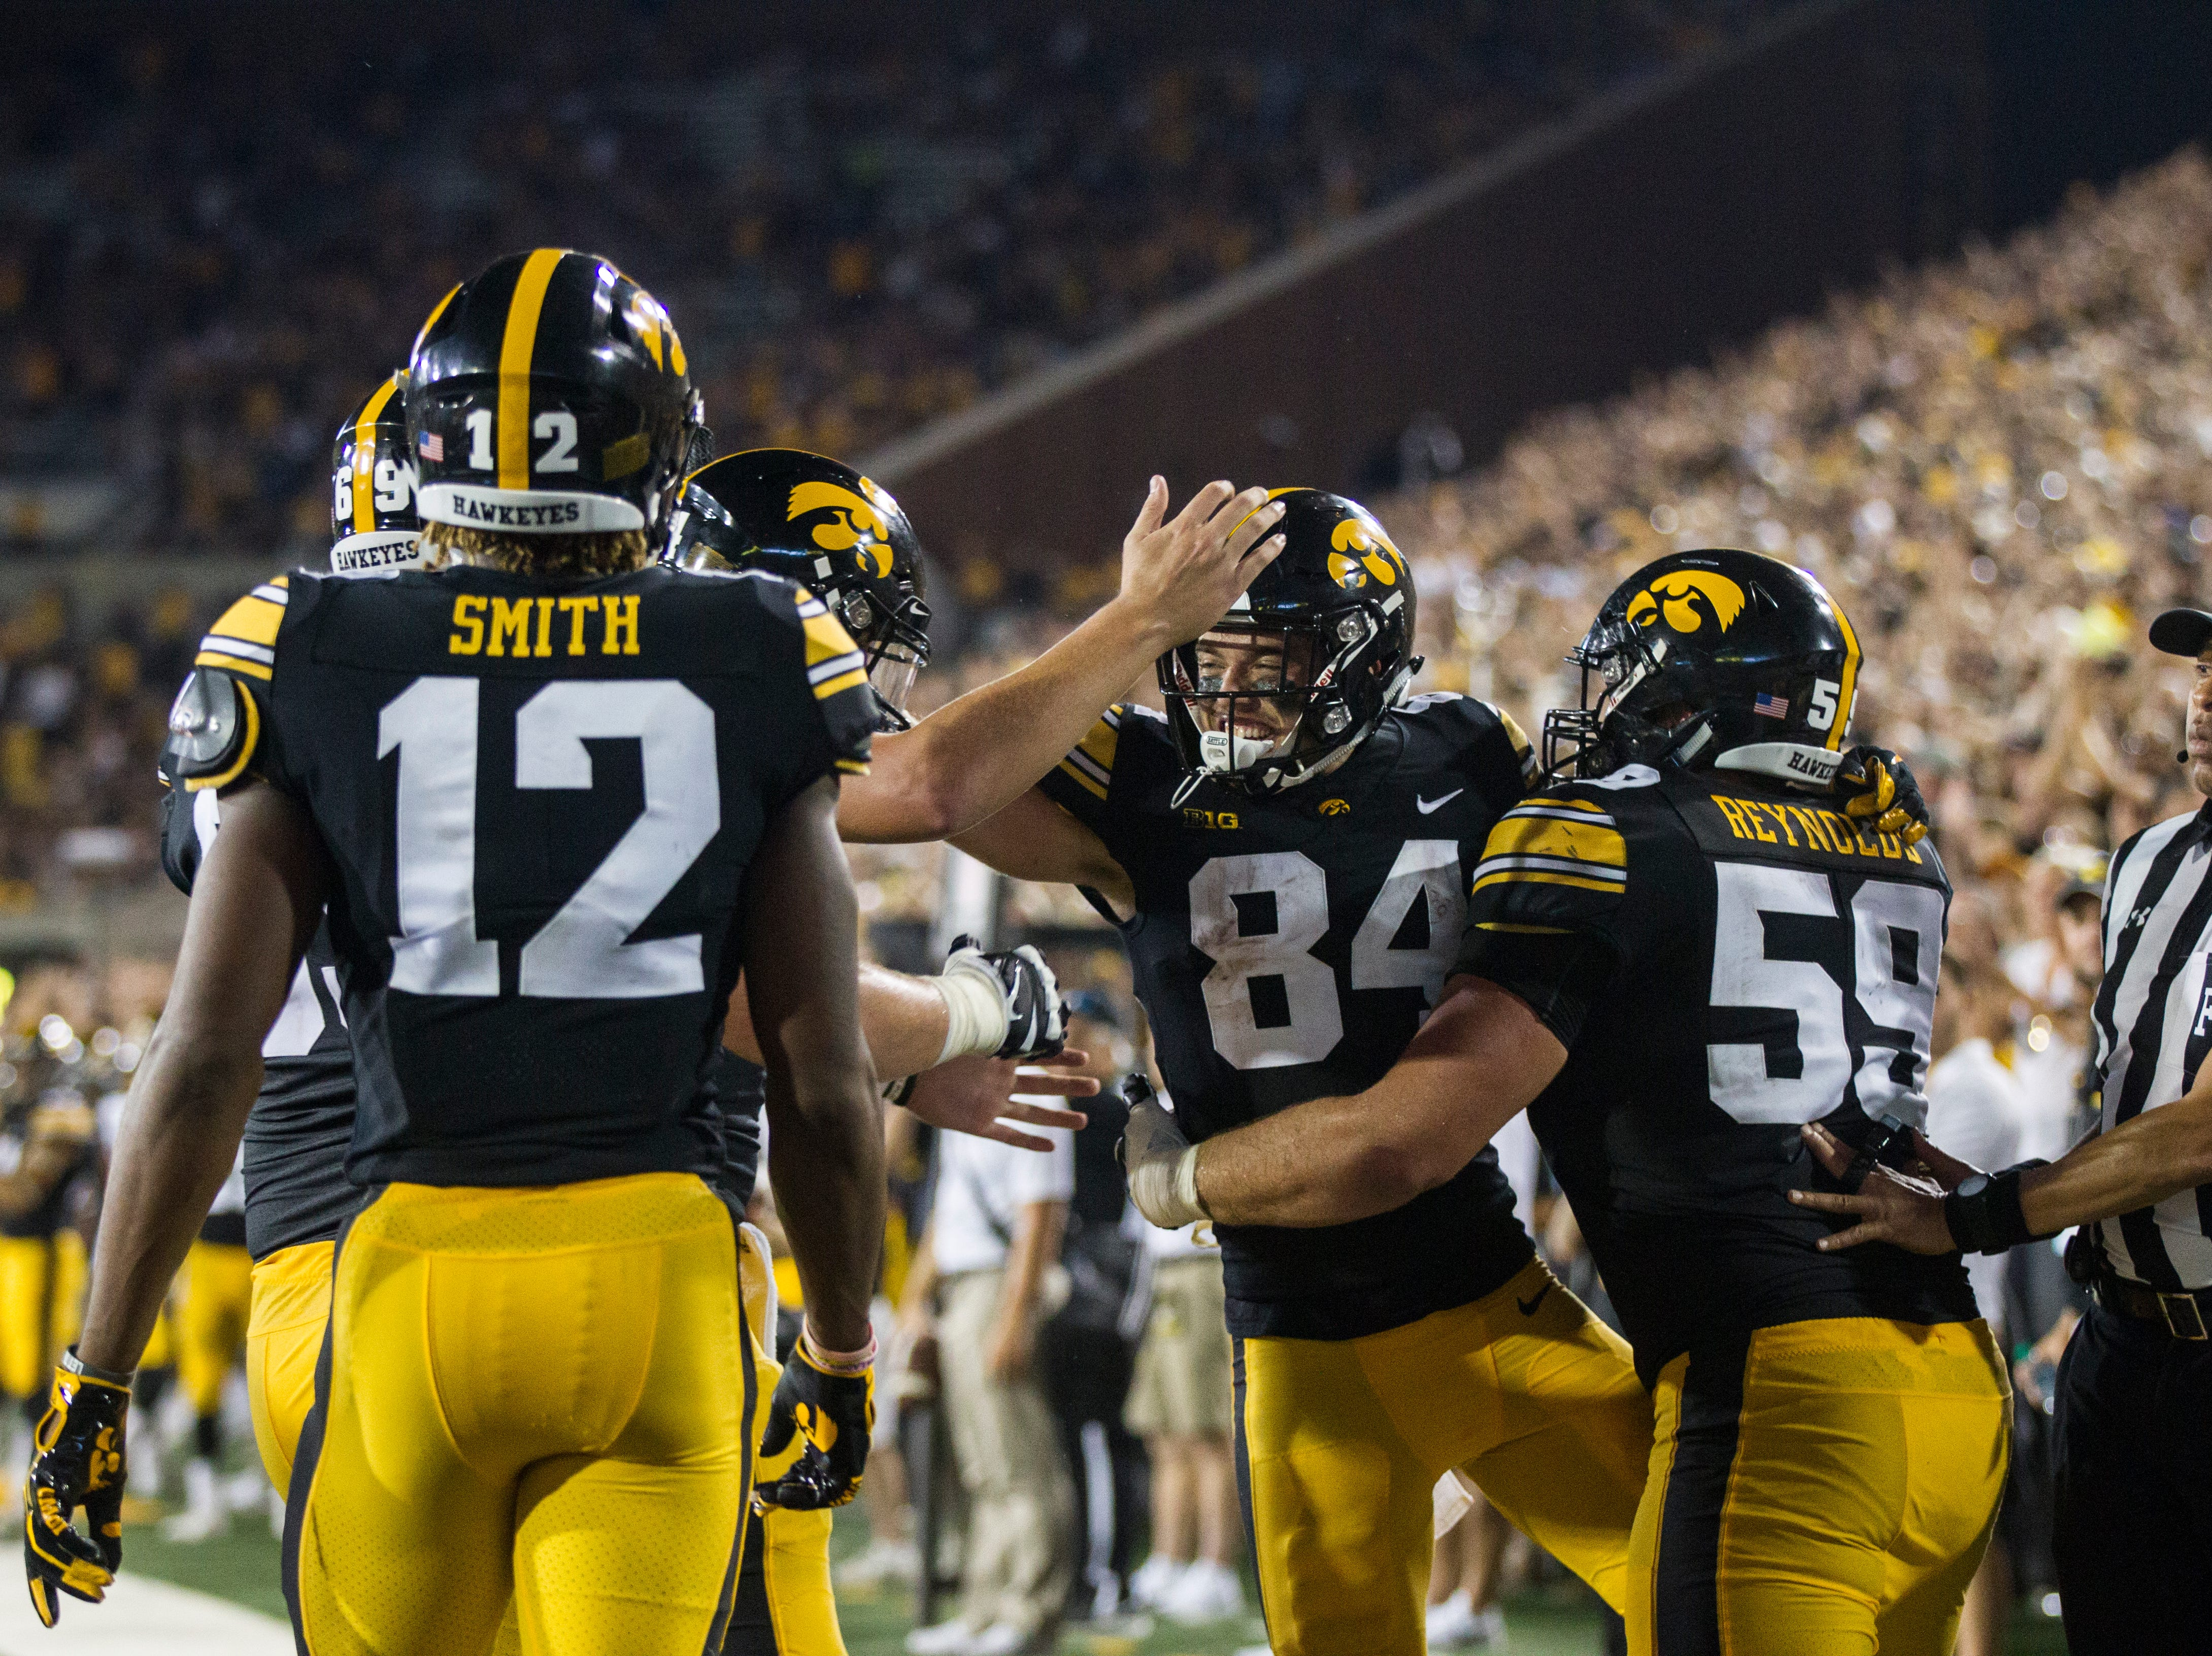 Iowa wide receiver Nick Easley (84) celebrates with teammates after catching a touchdown pass during an NCAA football game on Saturday, Sept. 15, 2018, at Kinnick Stadium in Iowa City.